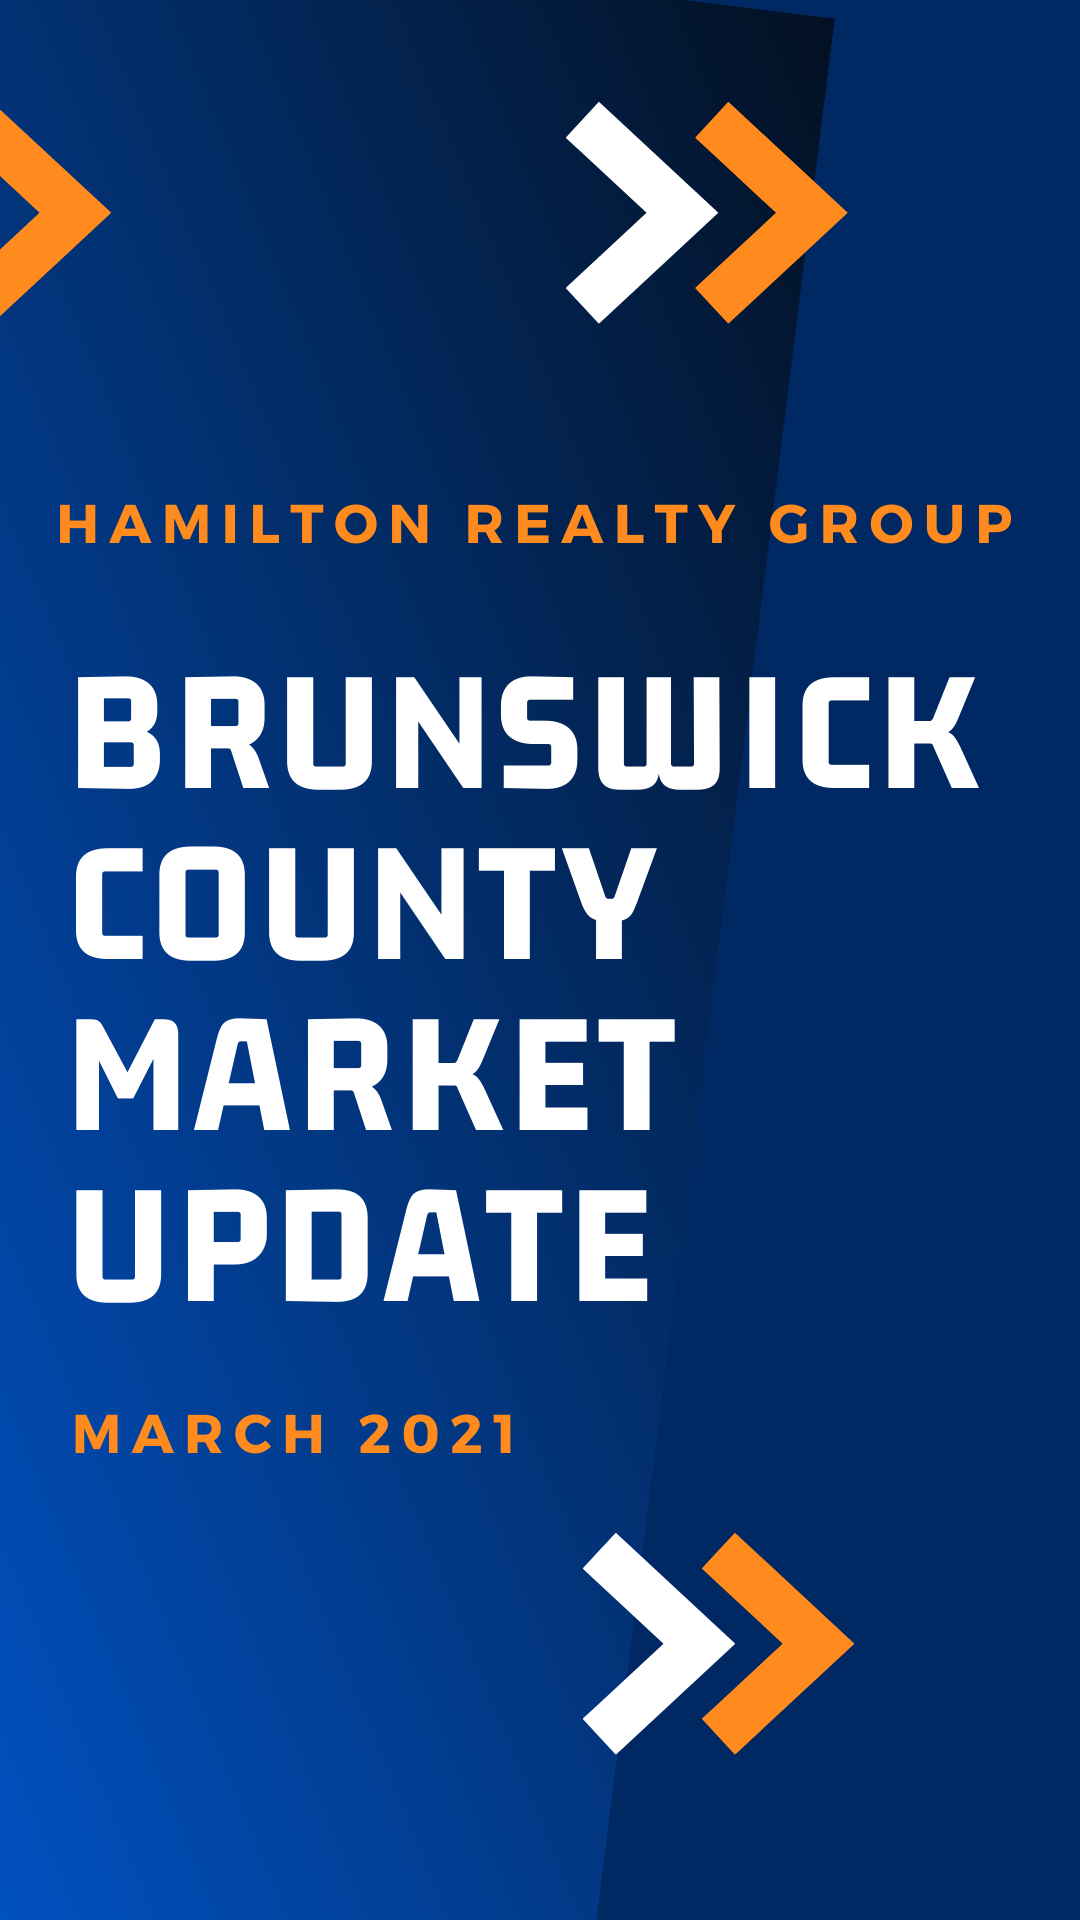 MARCH 2021: Brunswick County Market Update